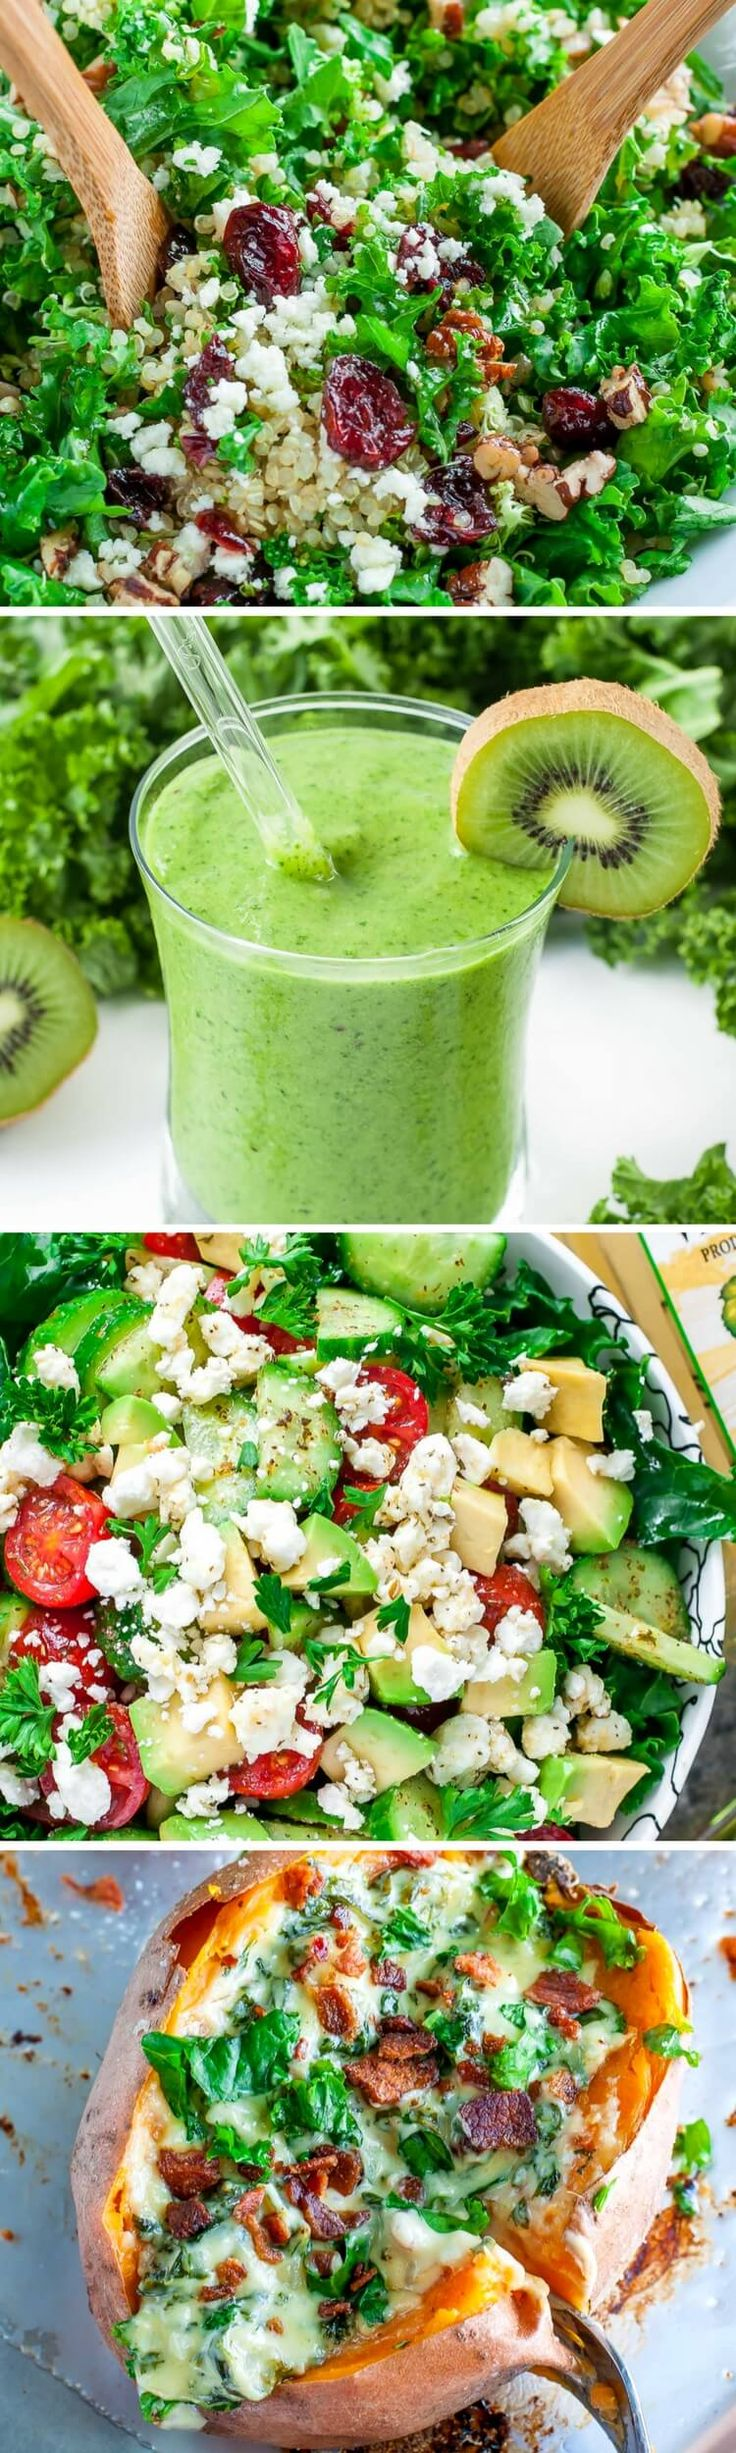 "This collection of tasty ways to eat more kale is long overdue! Let's take your outlook from ""Kale?"" to ""KALE YEAH!!!"" with delicious recipes that will change the way you think about this healthy veggie!"